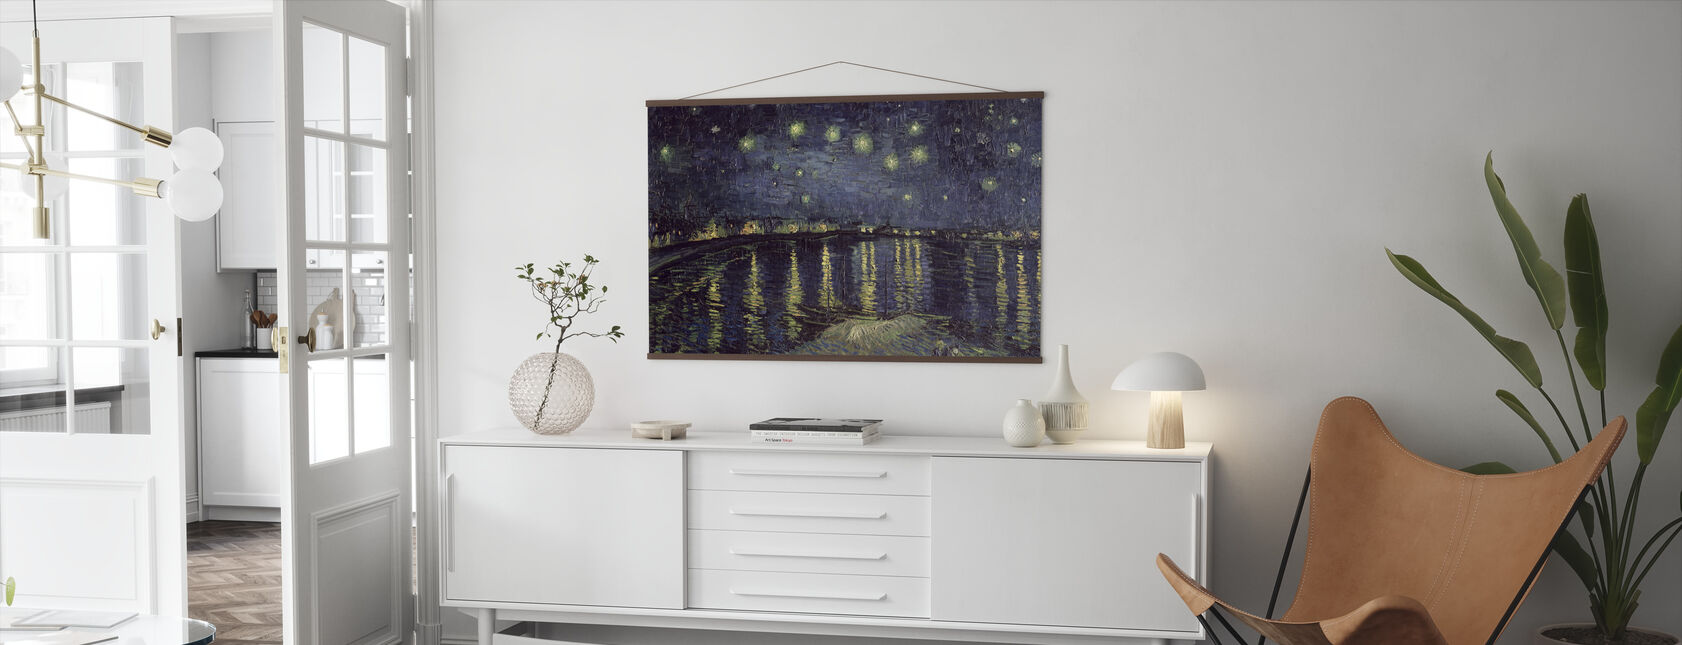 Starry Night - Vincent van Gogh - Poster - Living Room